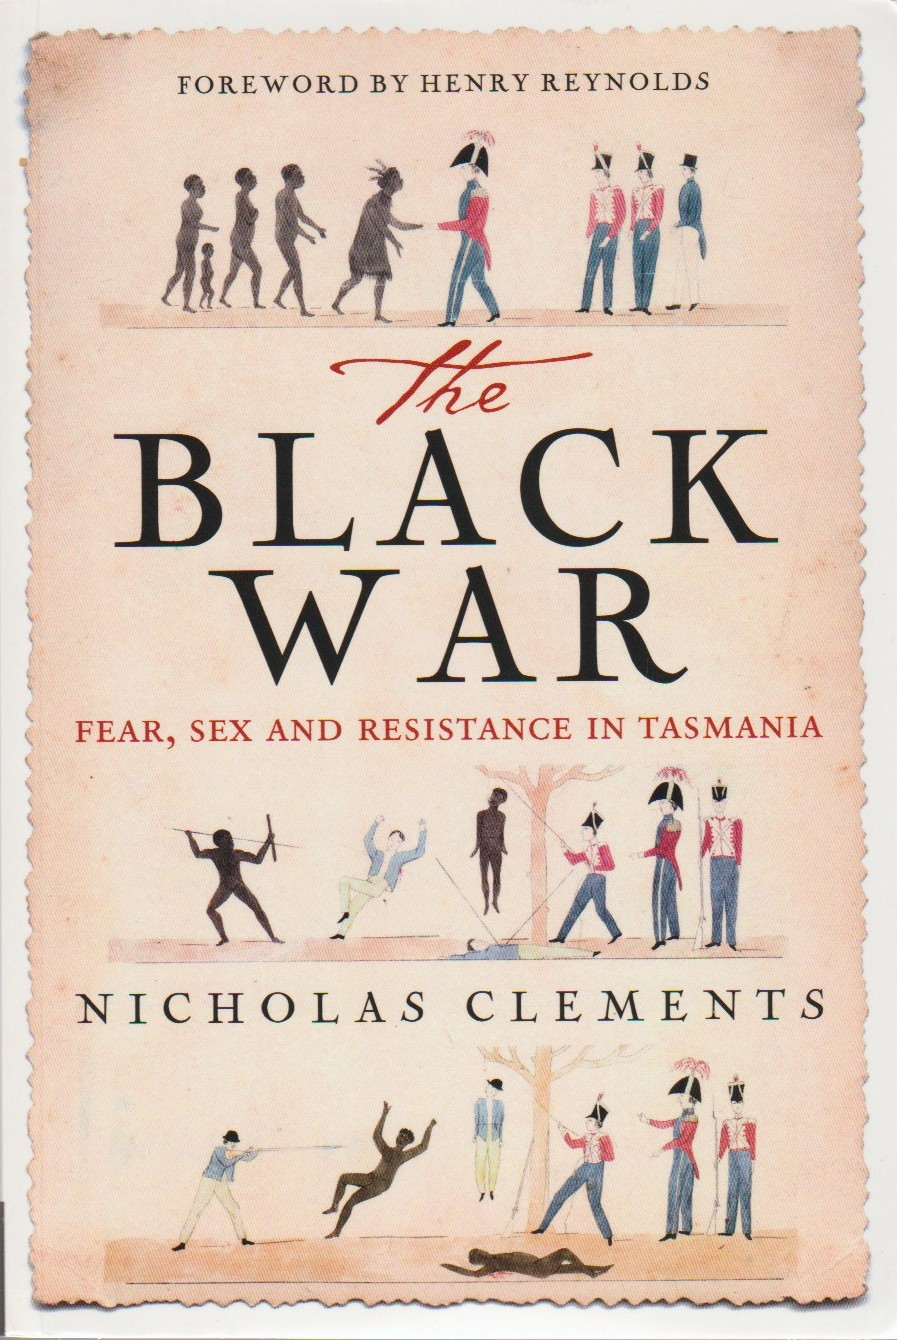 The Black War - Fear, Sex and Resistance in Tasmania